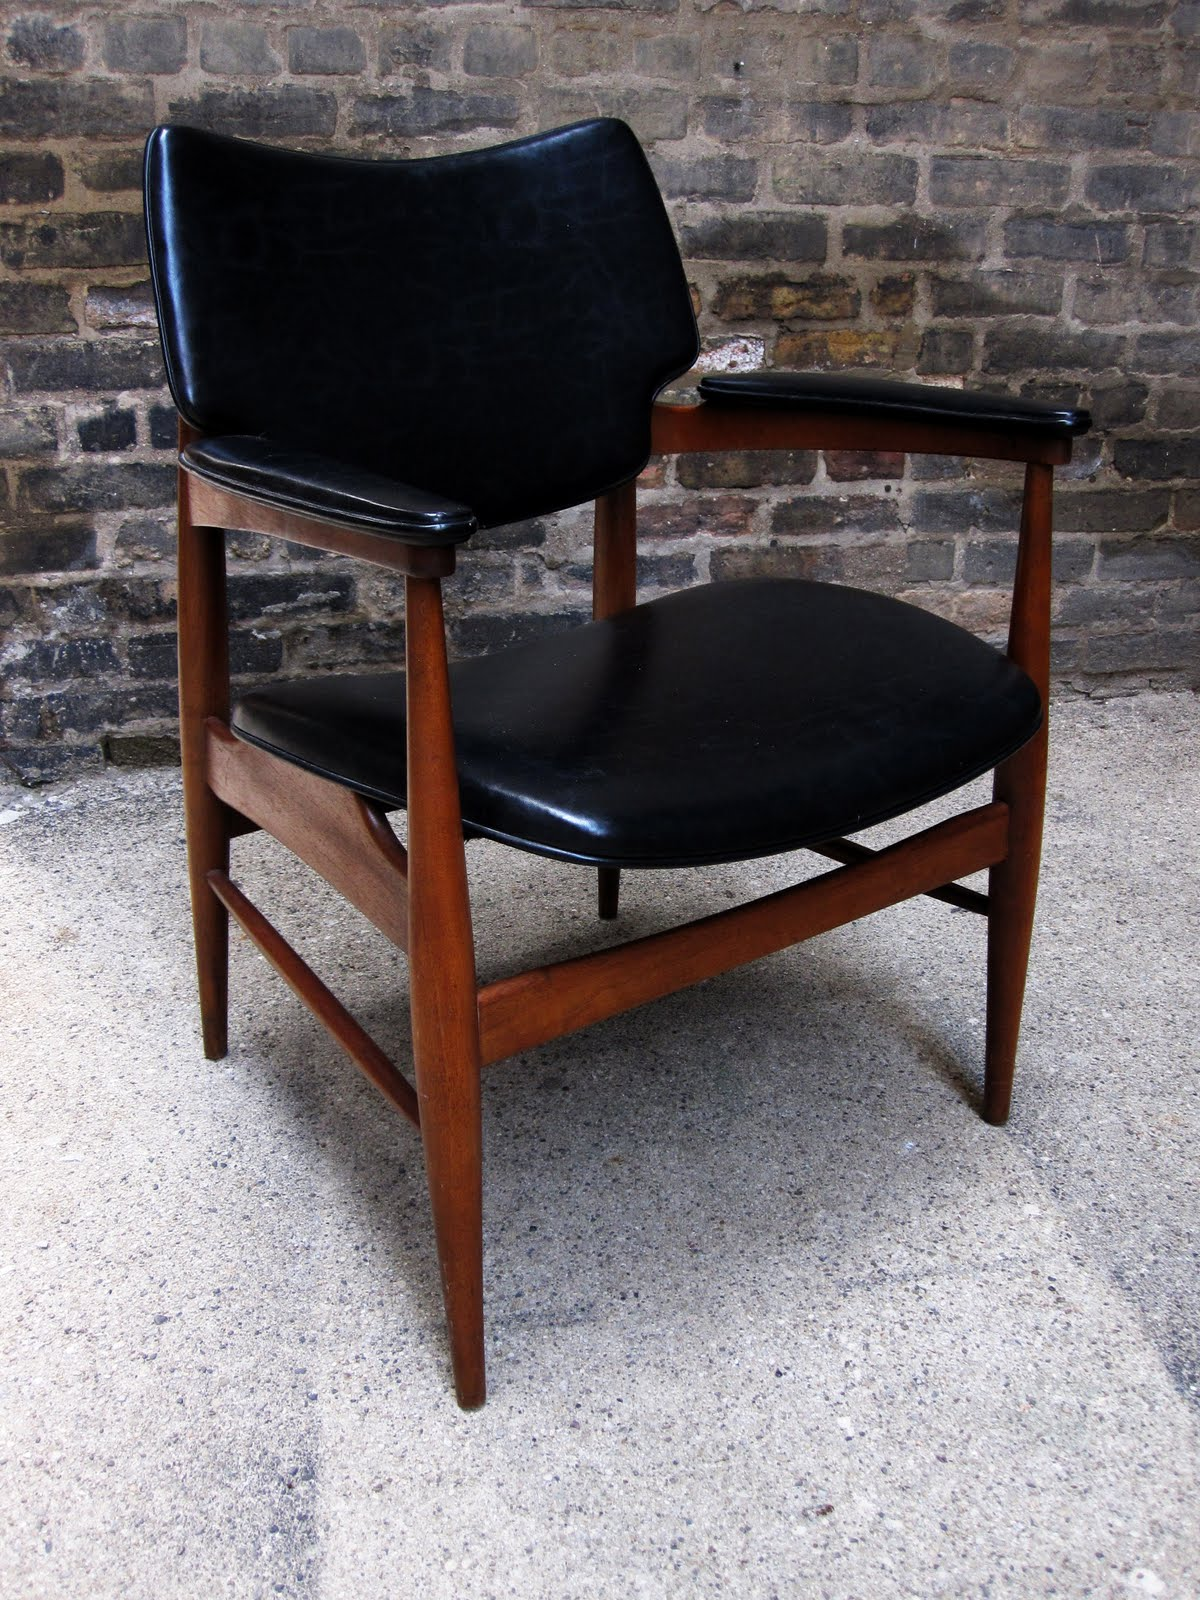 circa midcentury: 'mid century' walnut / leather side chair